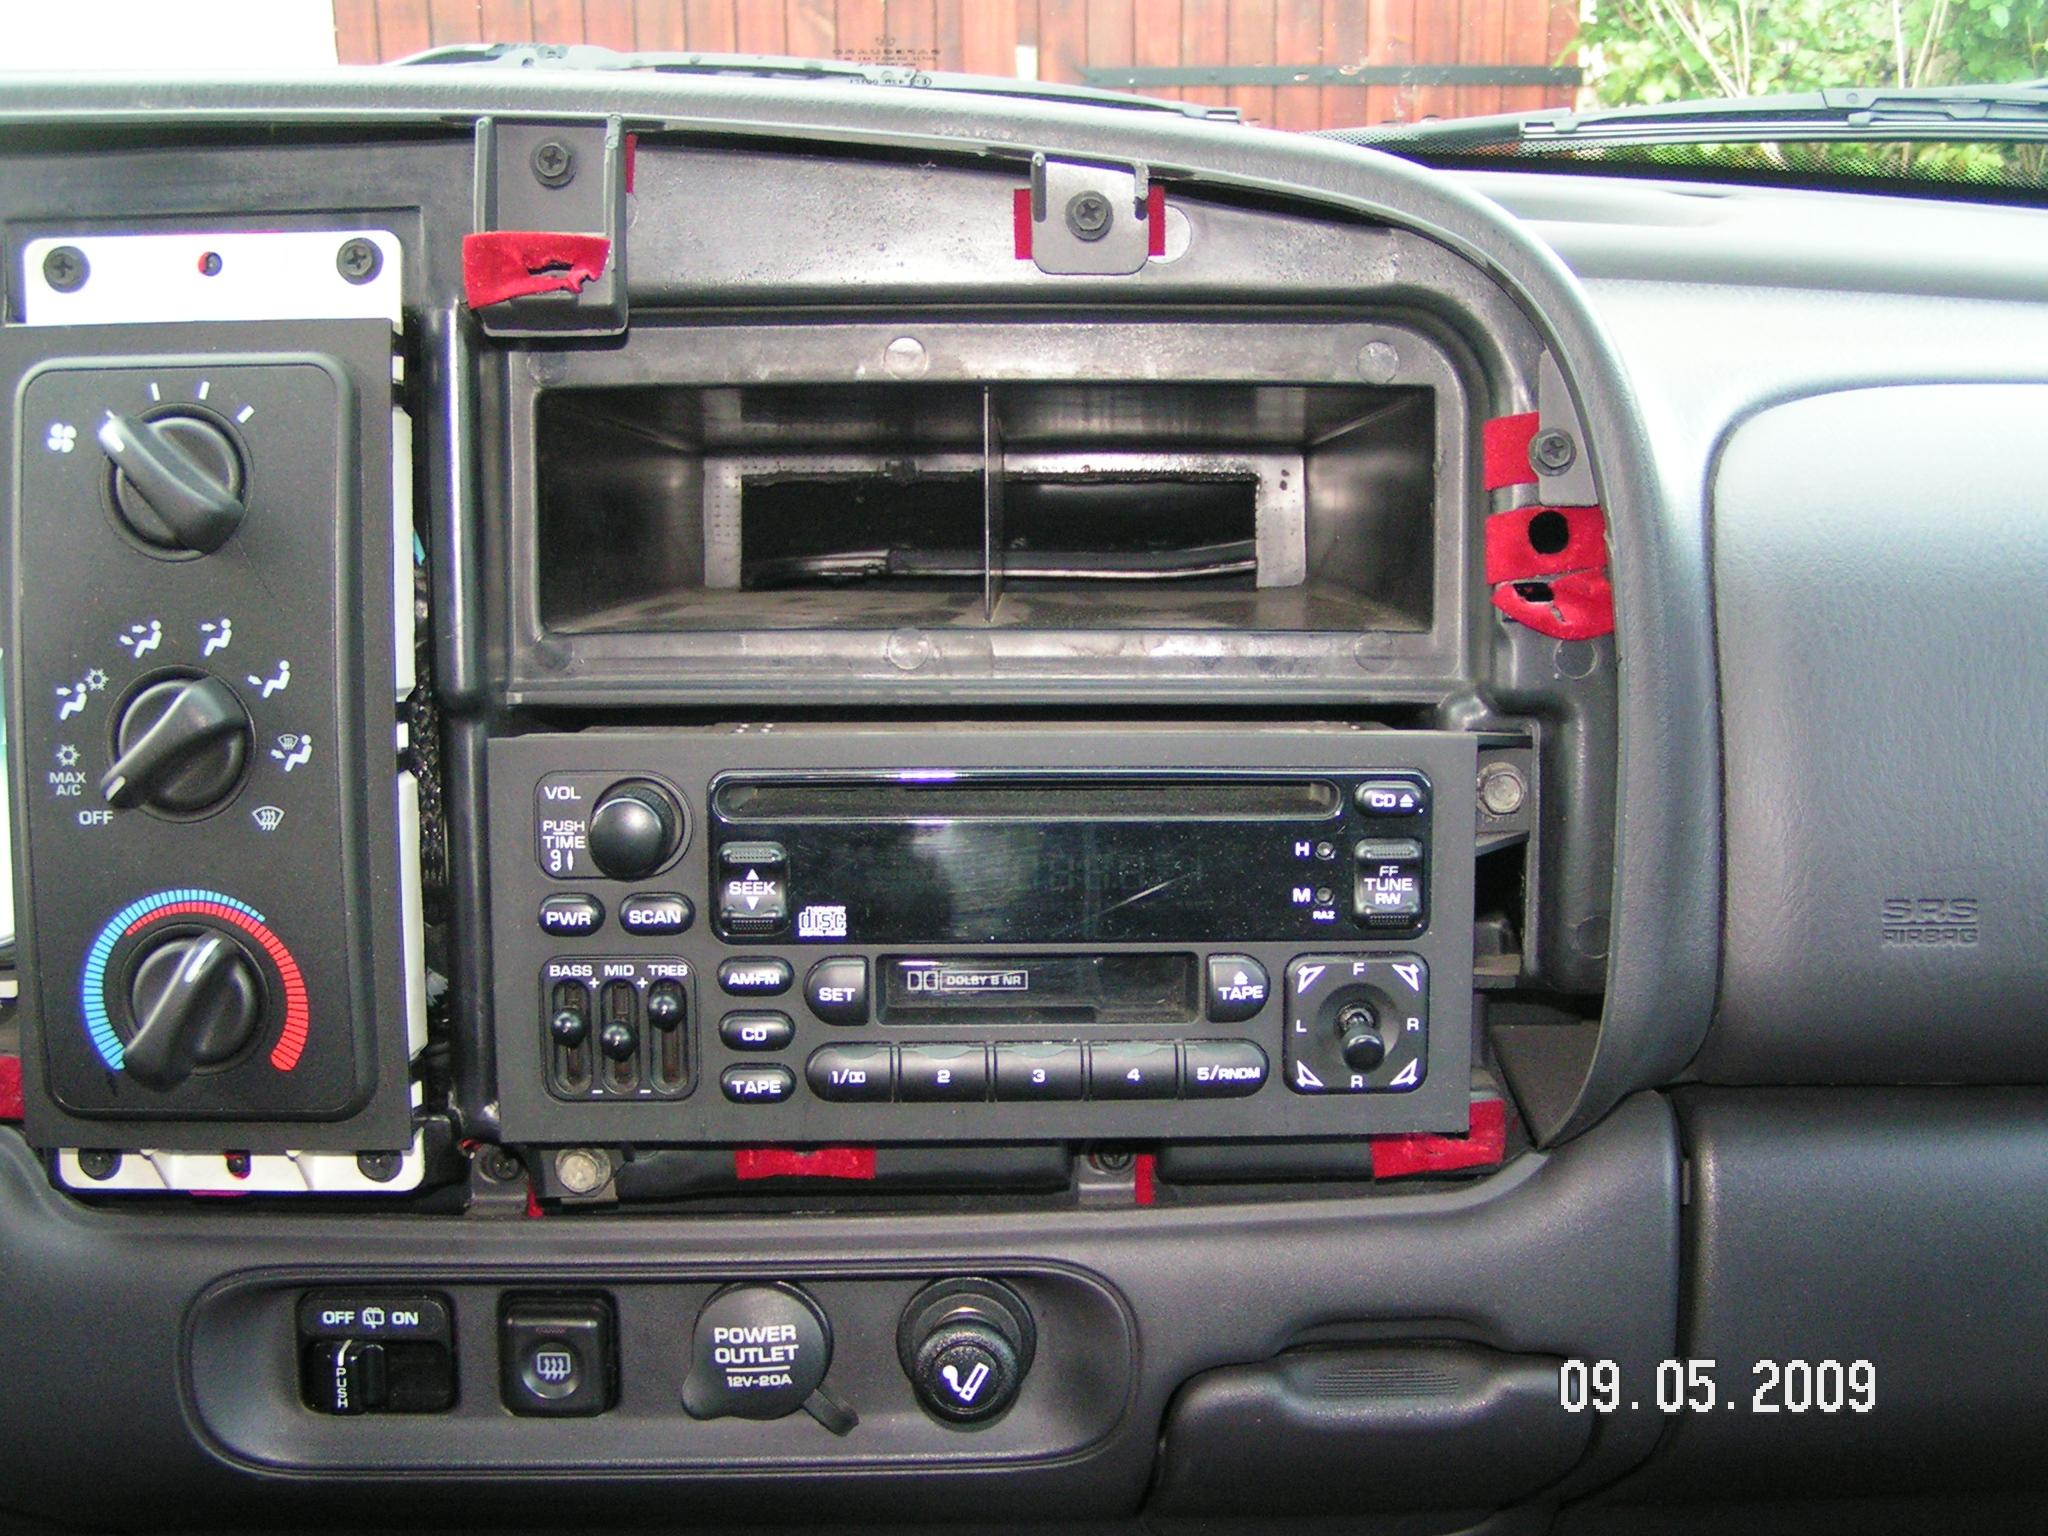 Stereo Wiring Diagram For A 2000 Dodge Durango Library Neon Head Unit